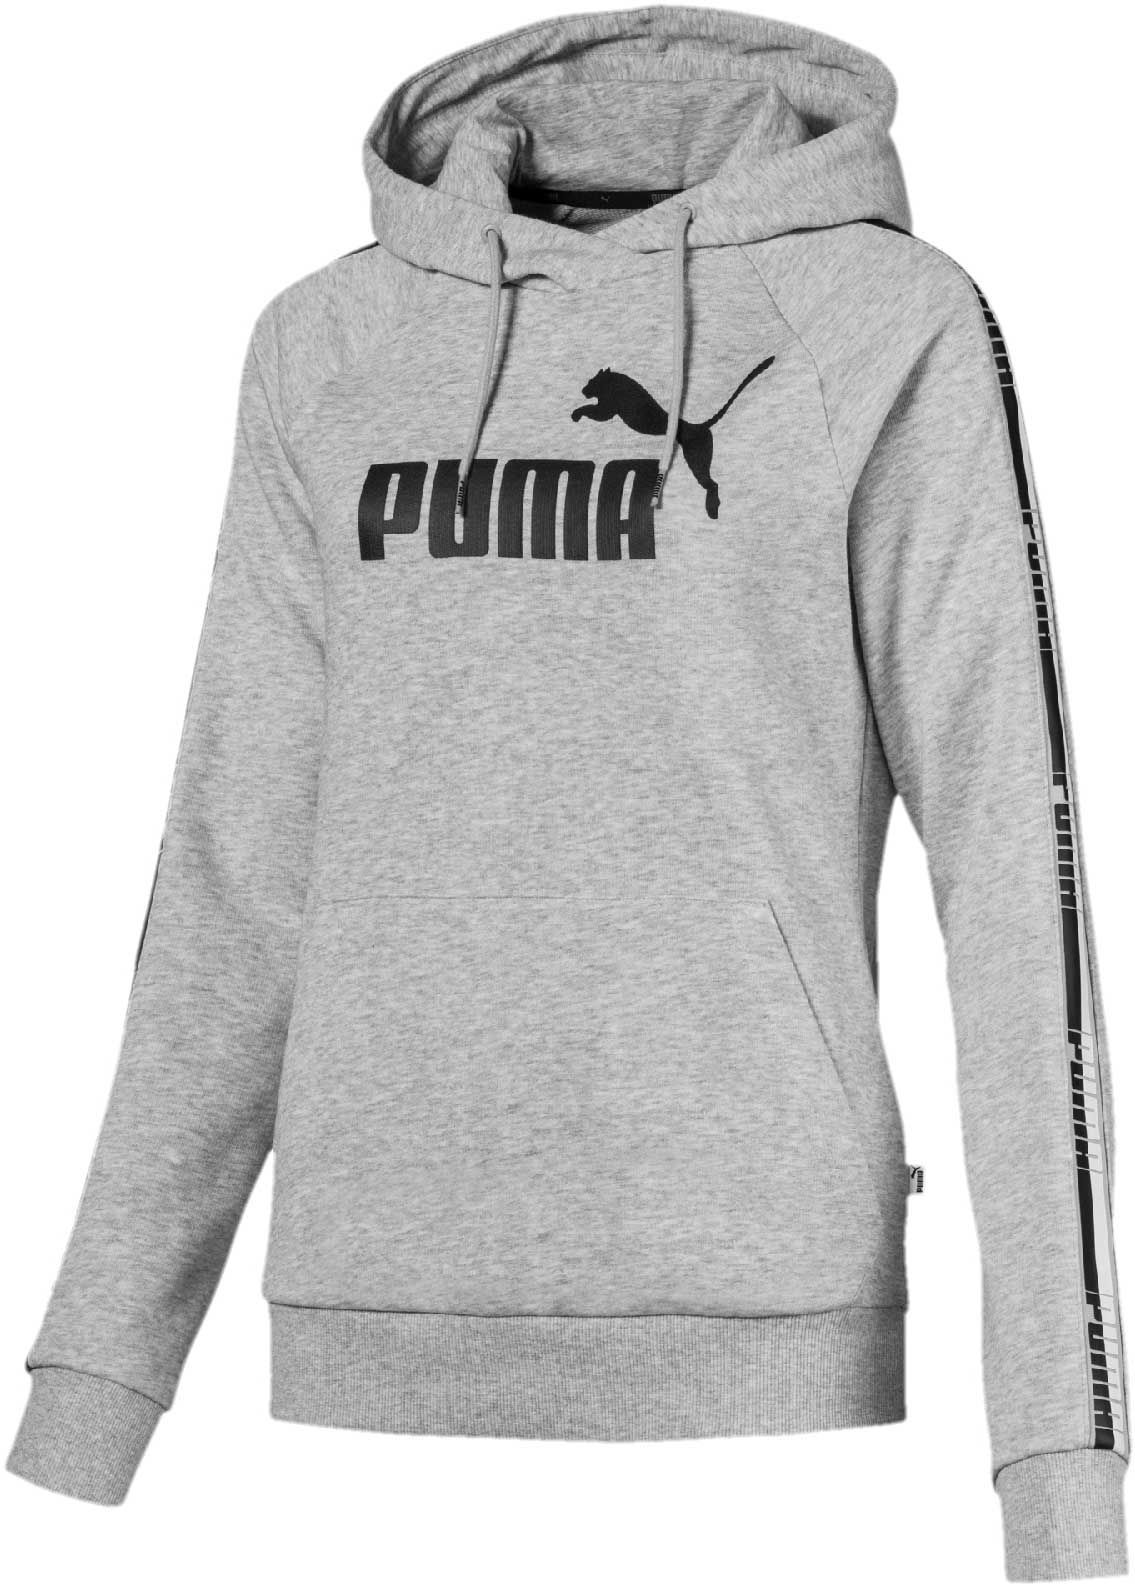 38e318412 PUMA Women's Tape Hoodie in 2019 | Products | Puma outfit, Hoodies ...